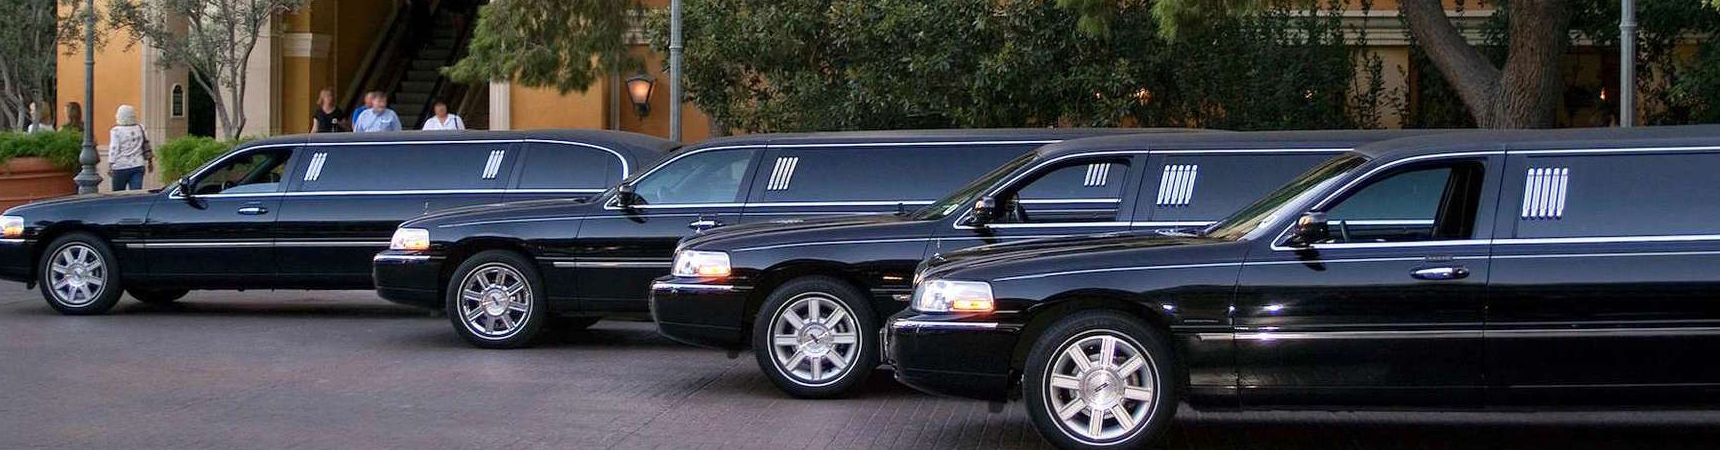 Tips on Renting Limousine for Your Wedding Day